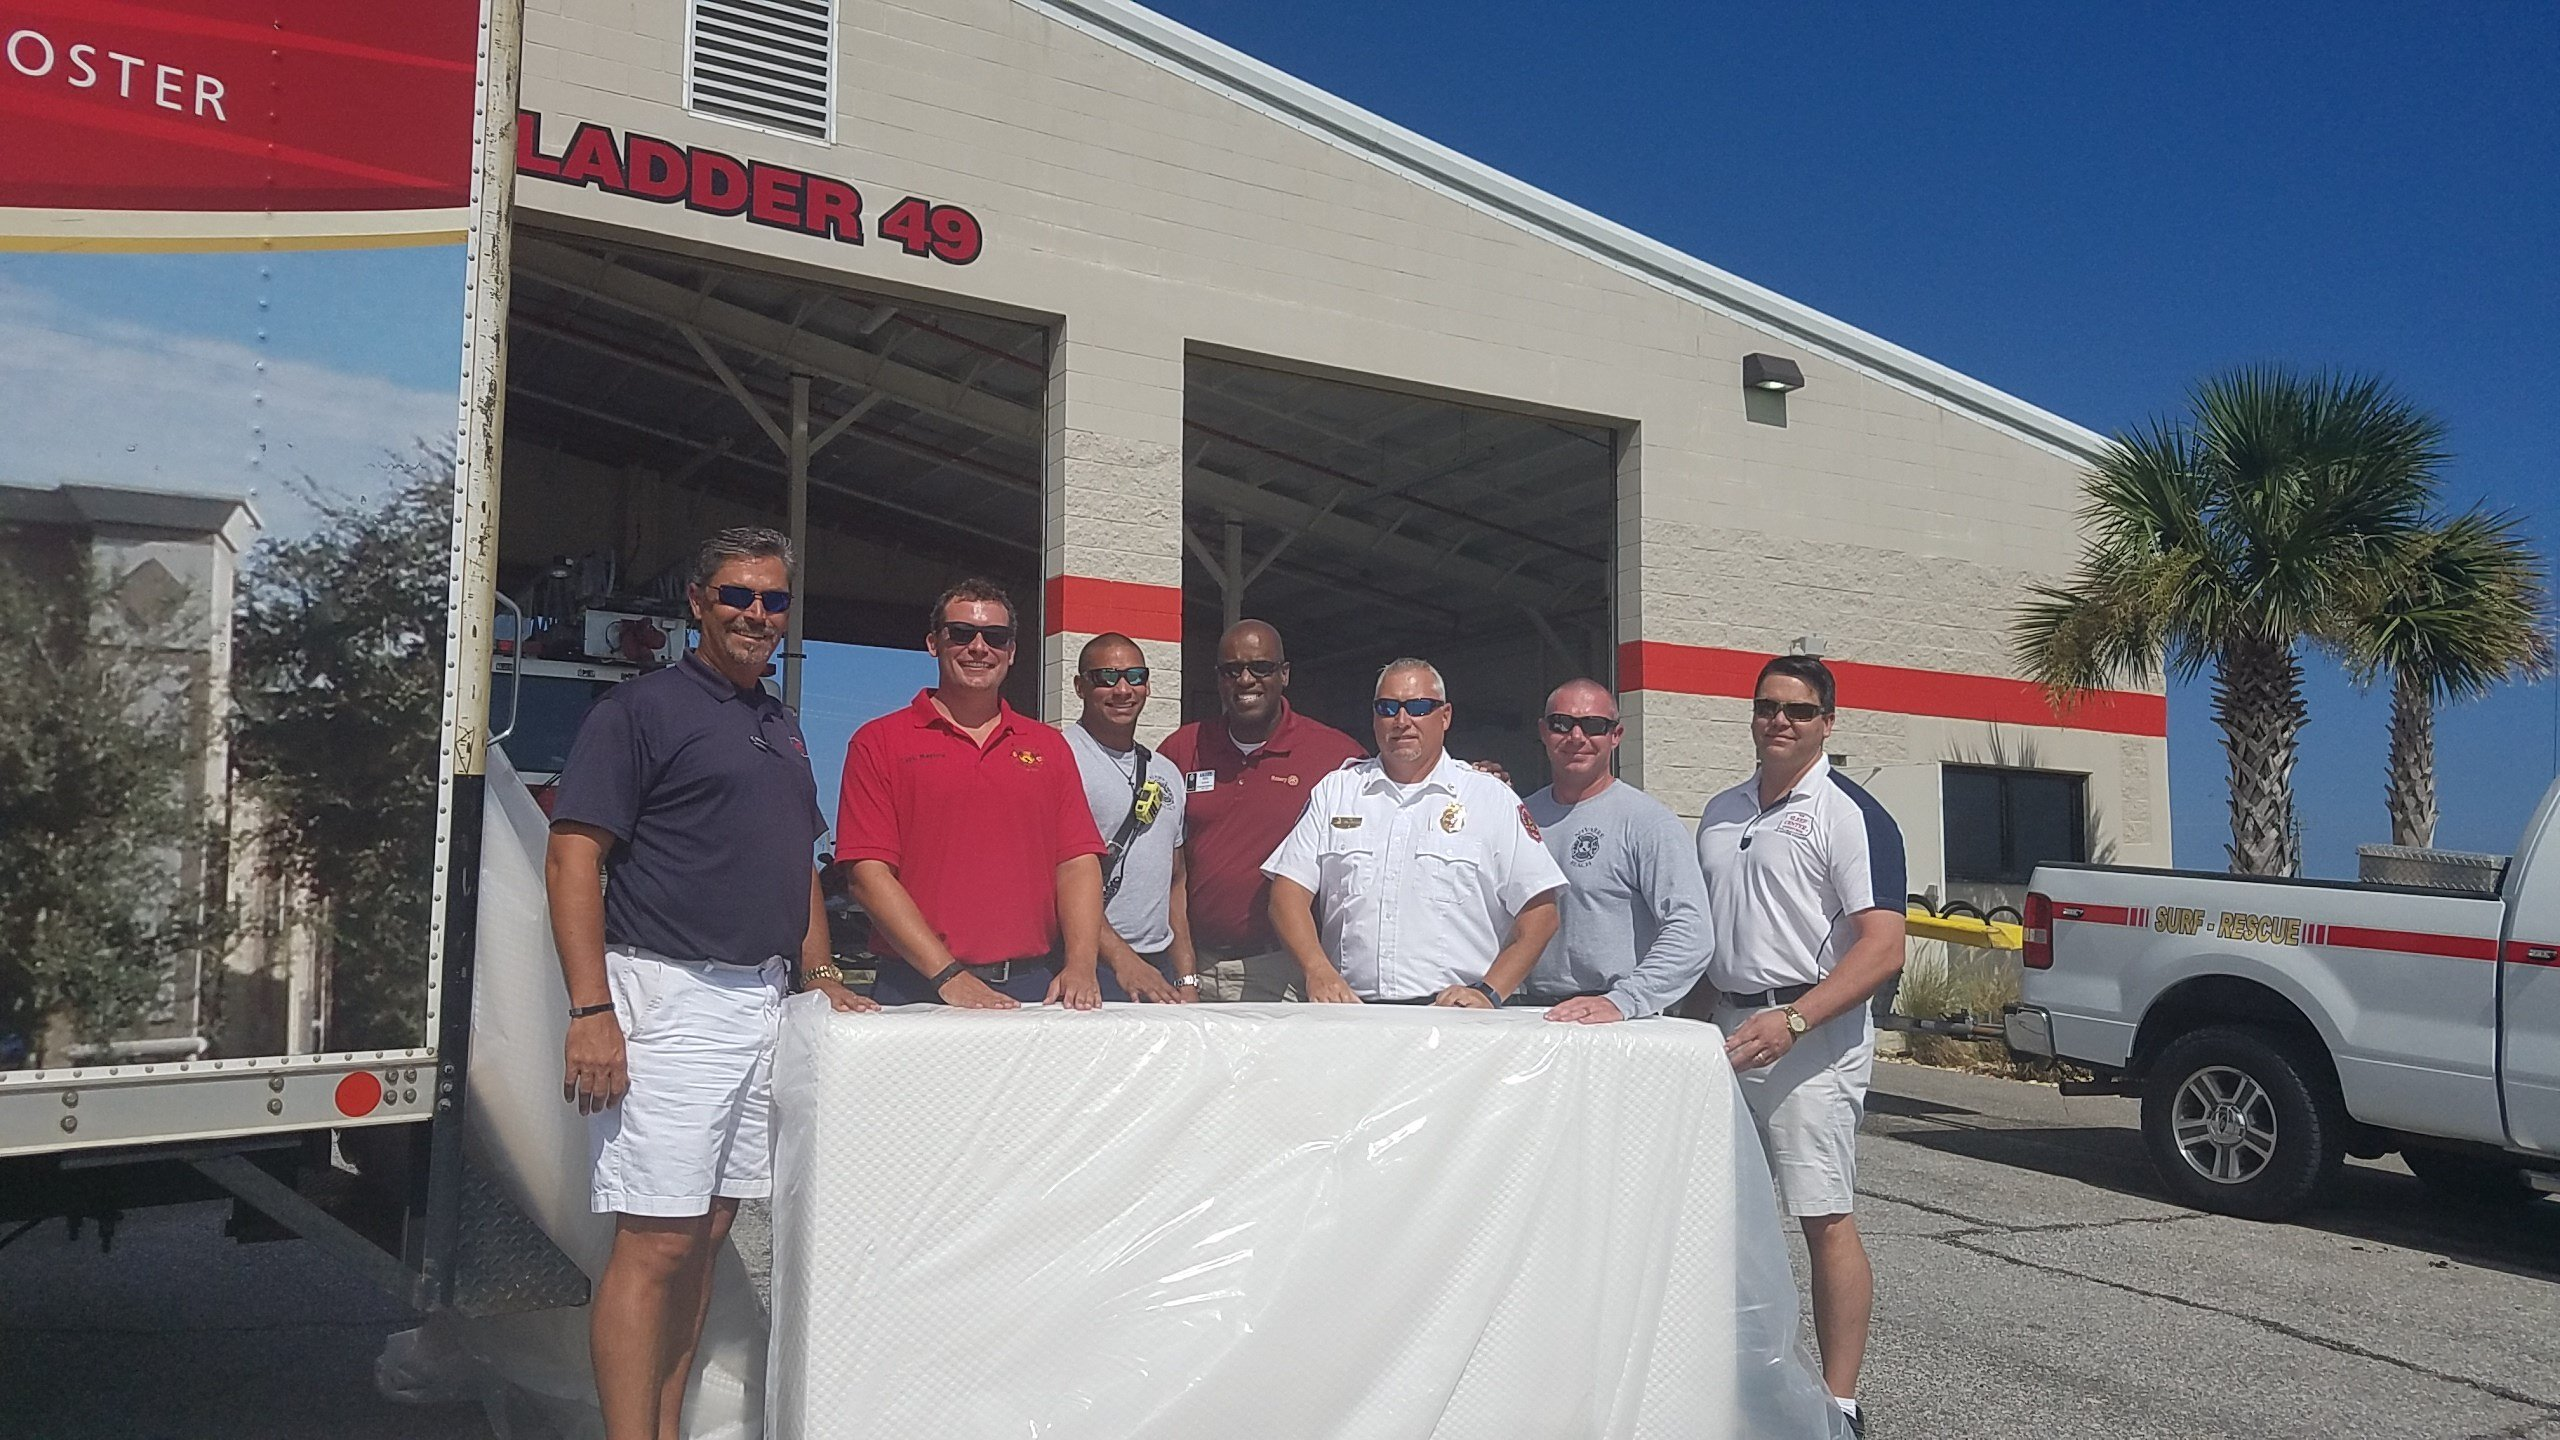 Sleep Center donates mattresses to fire departments in Northwest Florida. (Photo from Sleep Center)